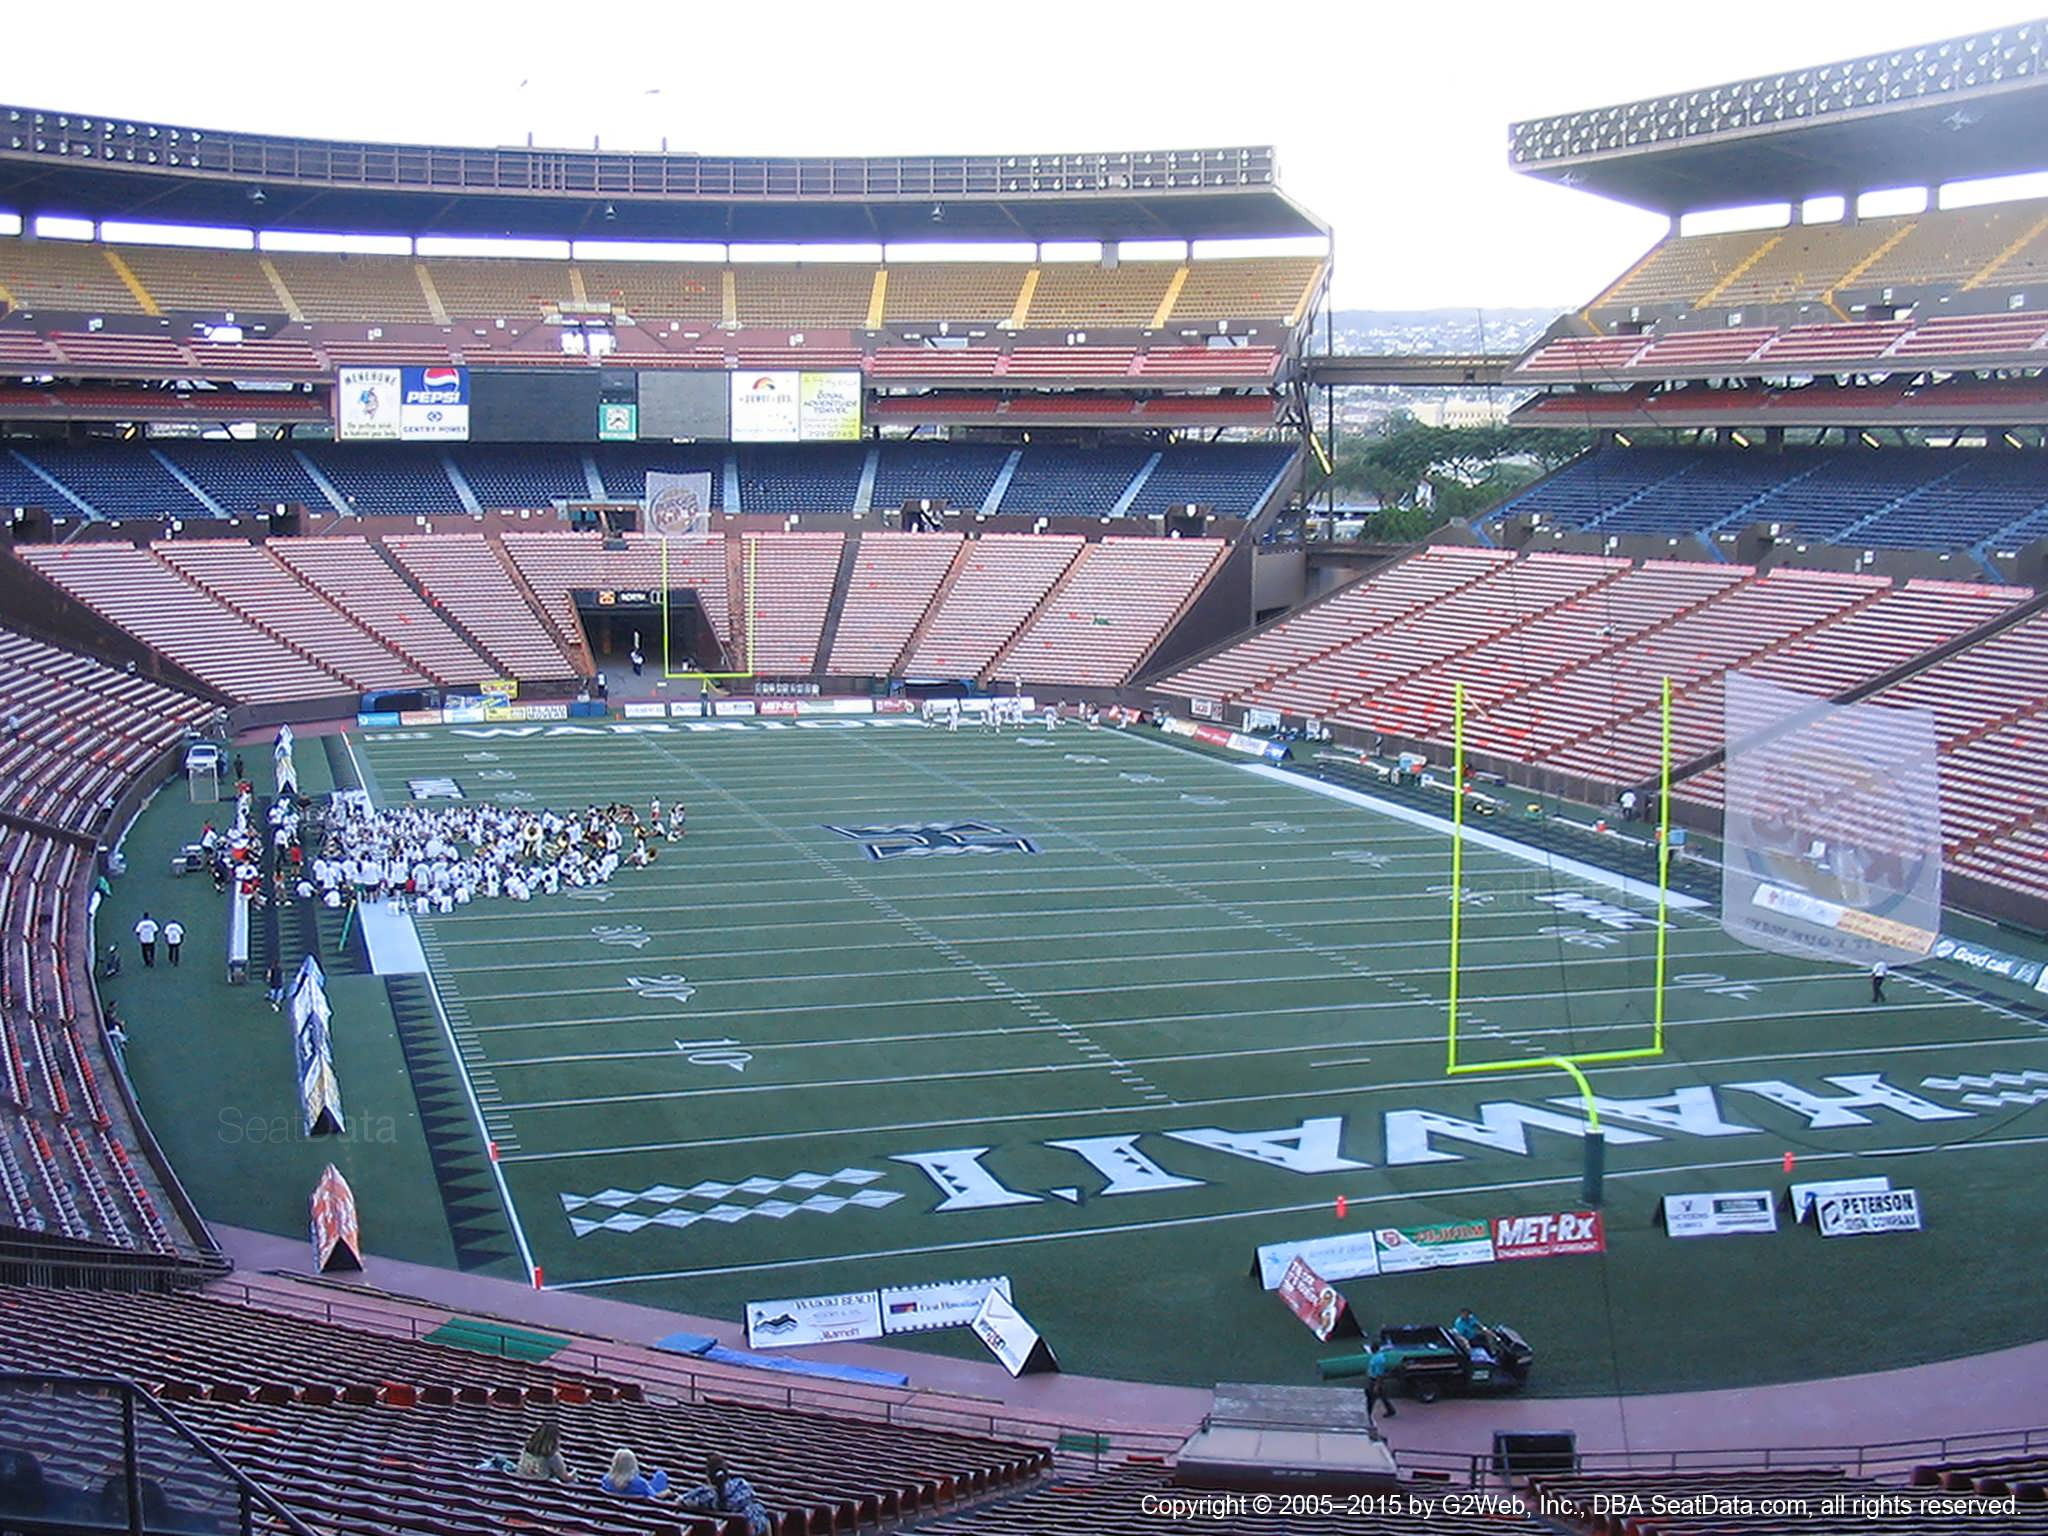 Seat View for Aloha Stadium Blue C